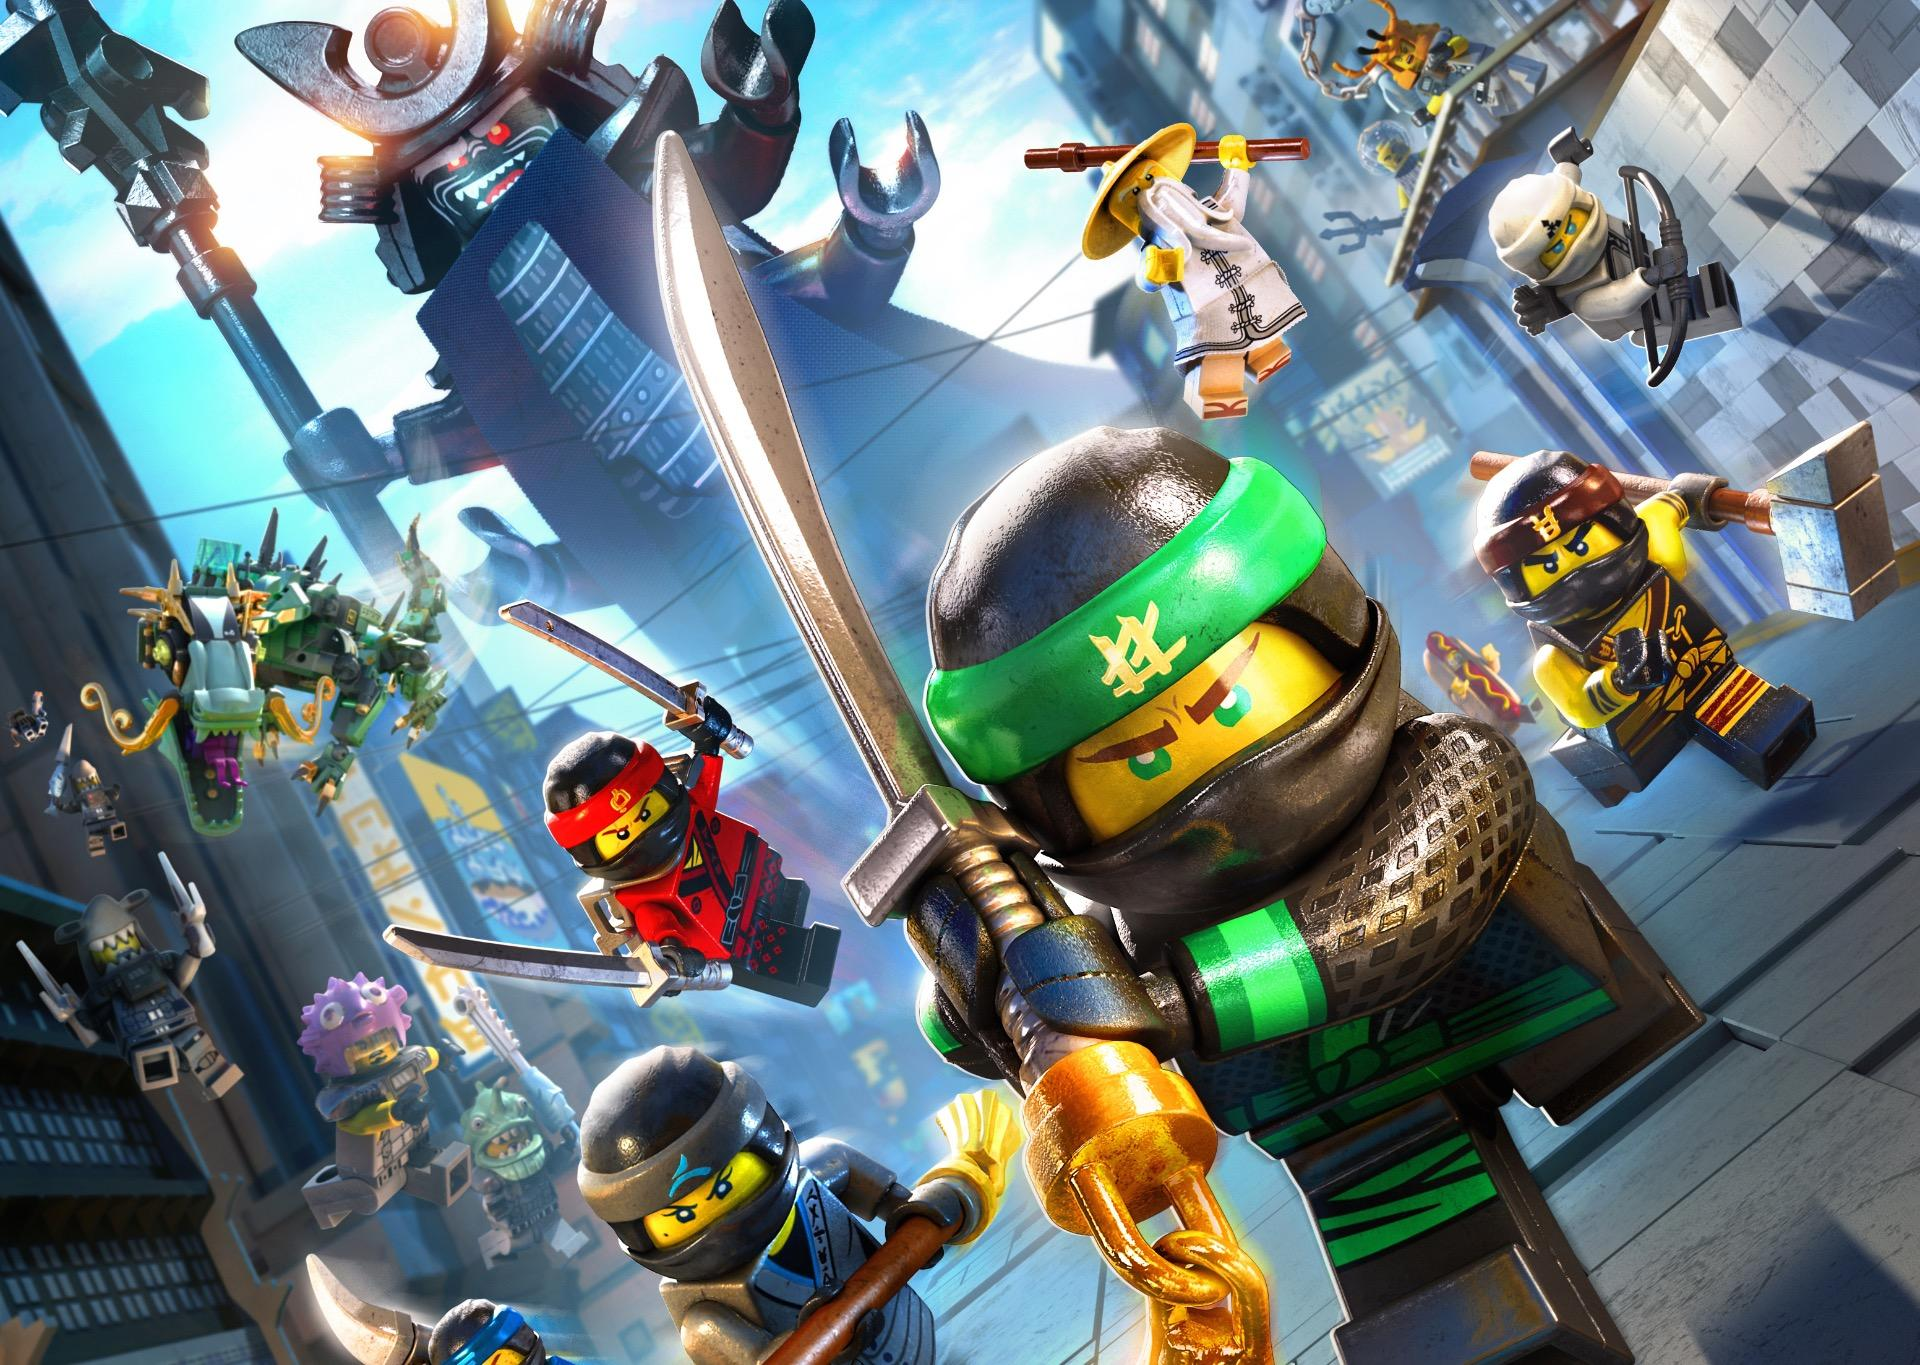 New Trailer Released For The Lego Ninjago Movie Video Game